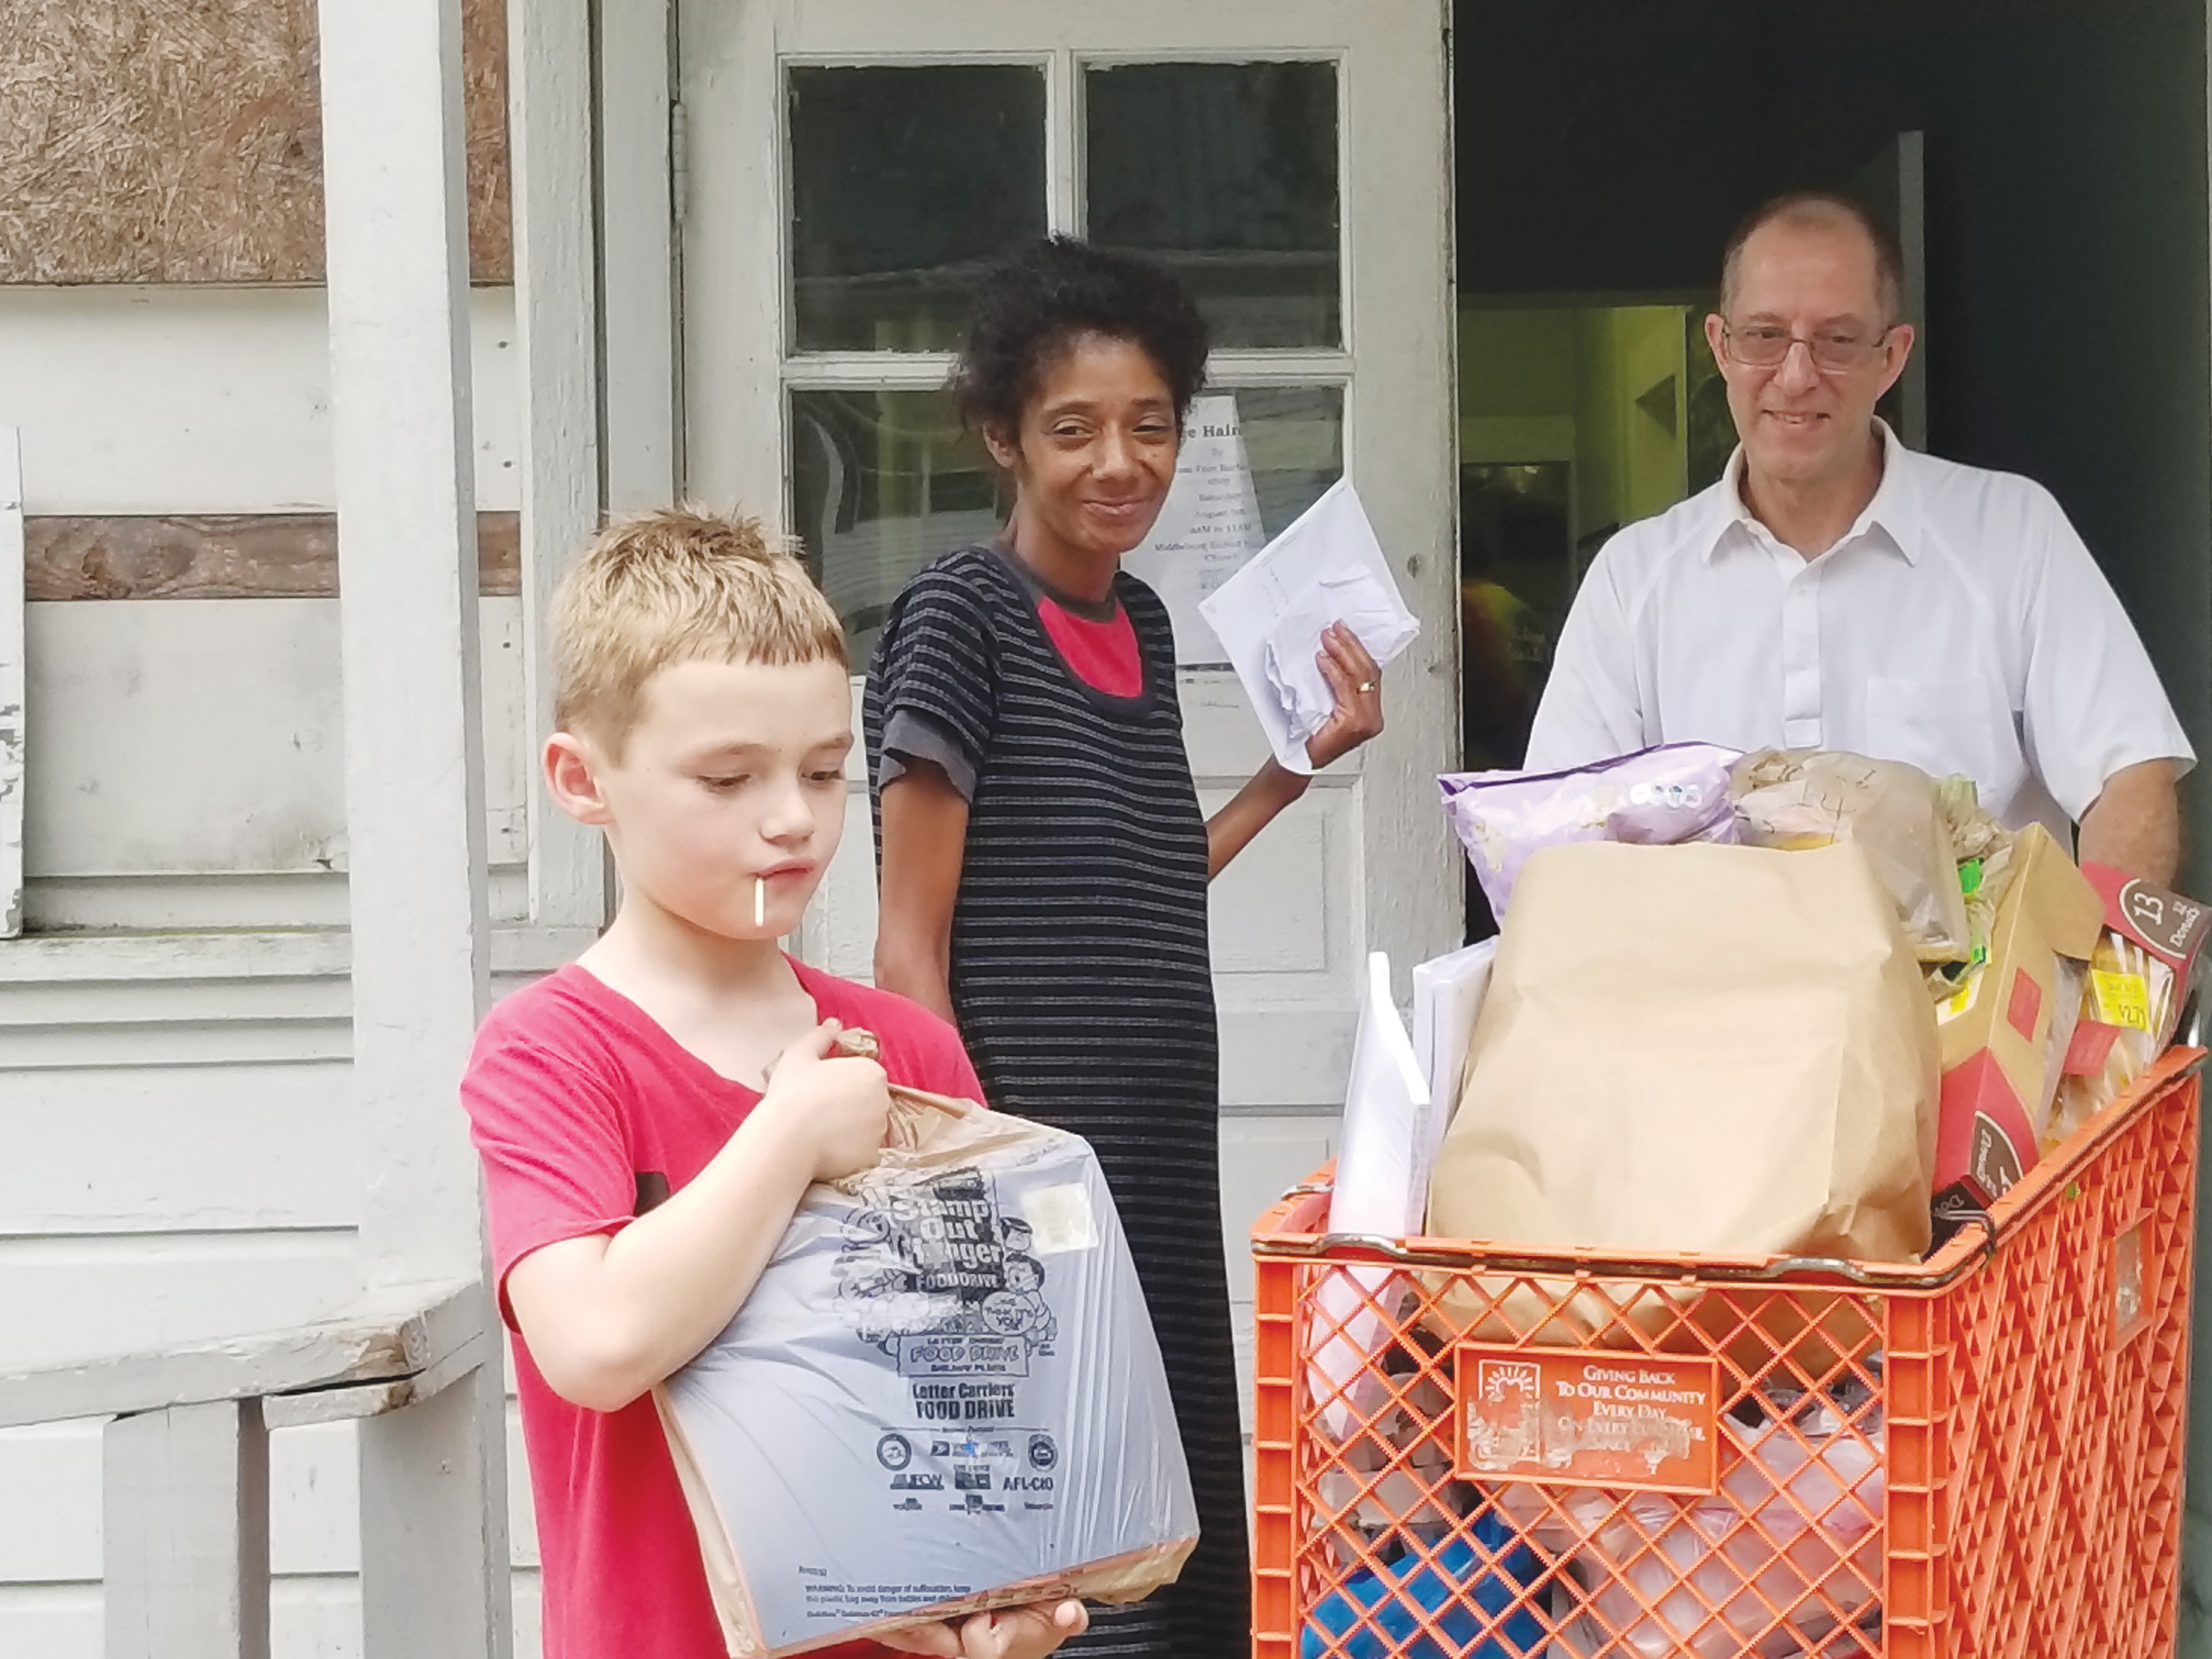 Margaret Hines, center, and her son Carlton, left are grateful for the Aug. 3 school supply distribution at Middleburg Methodist Church where volunteer Ray Ashcraft pushes the cart of food and school supplies outside.